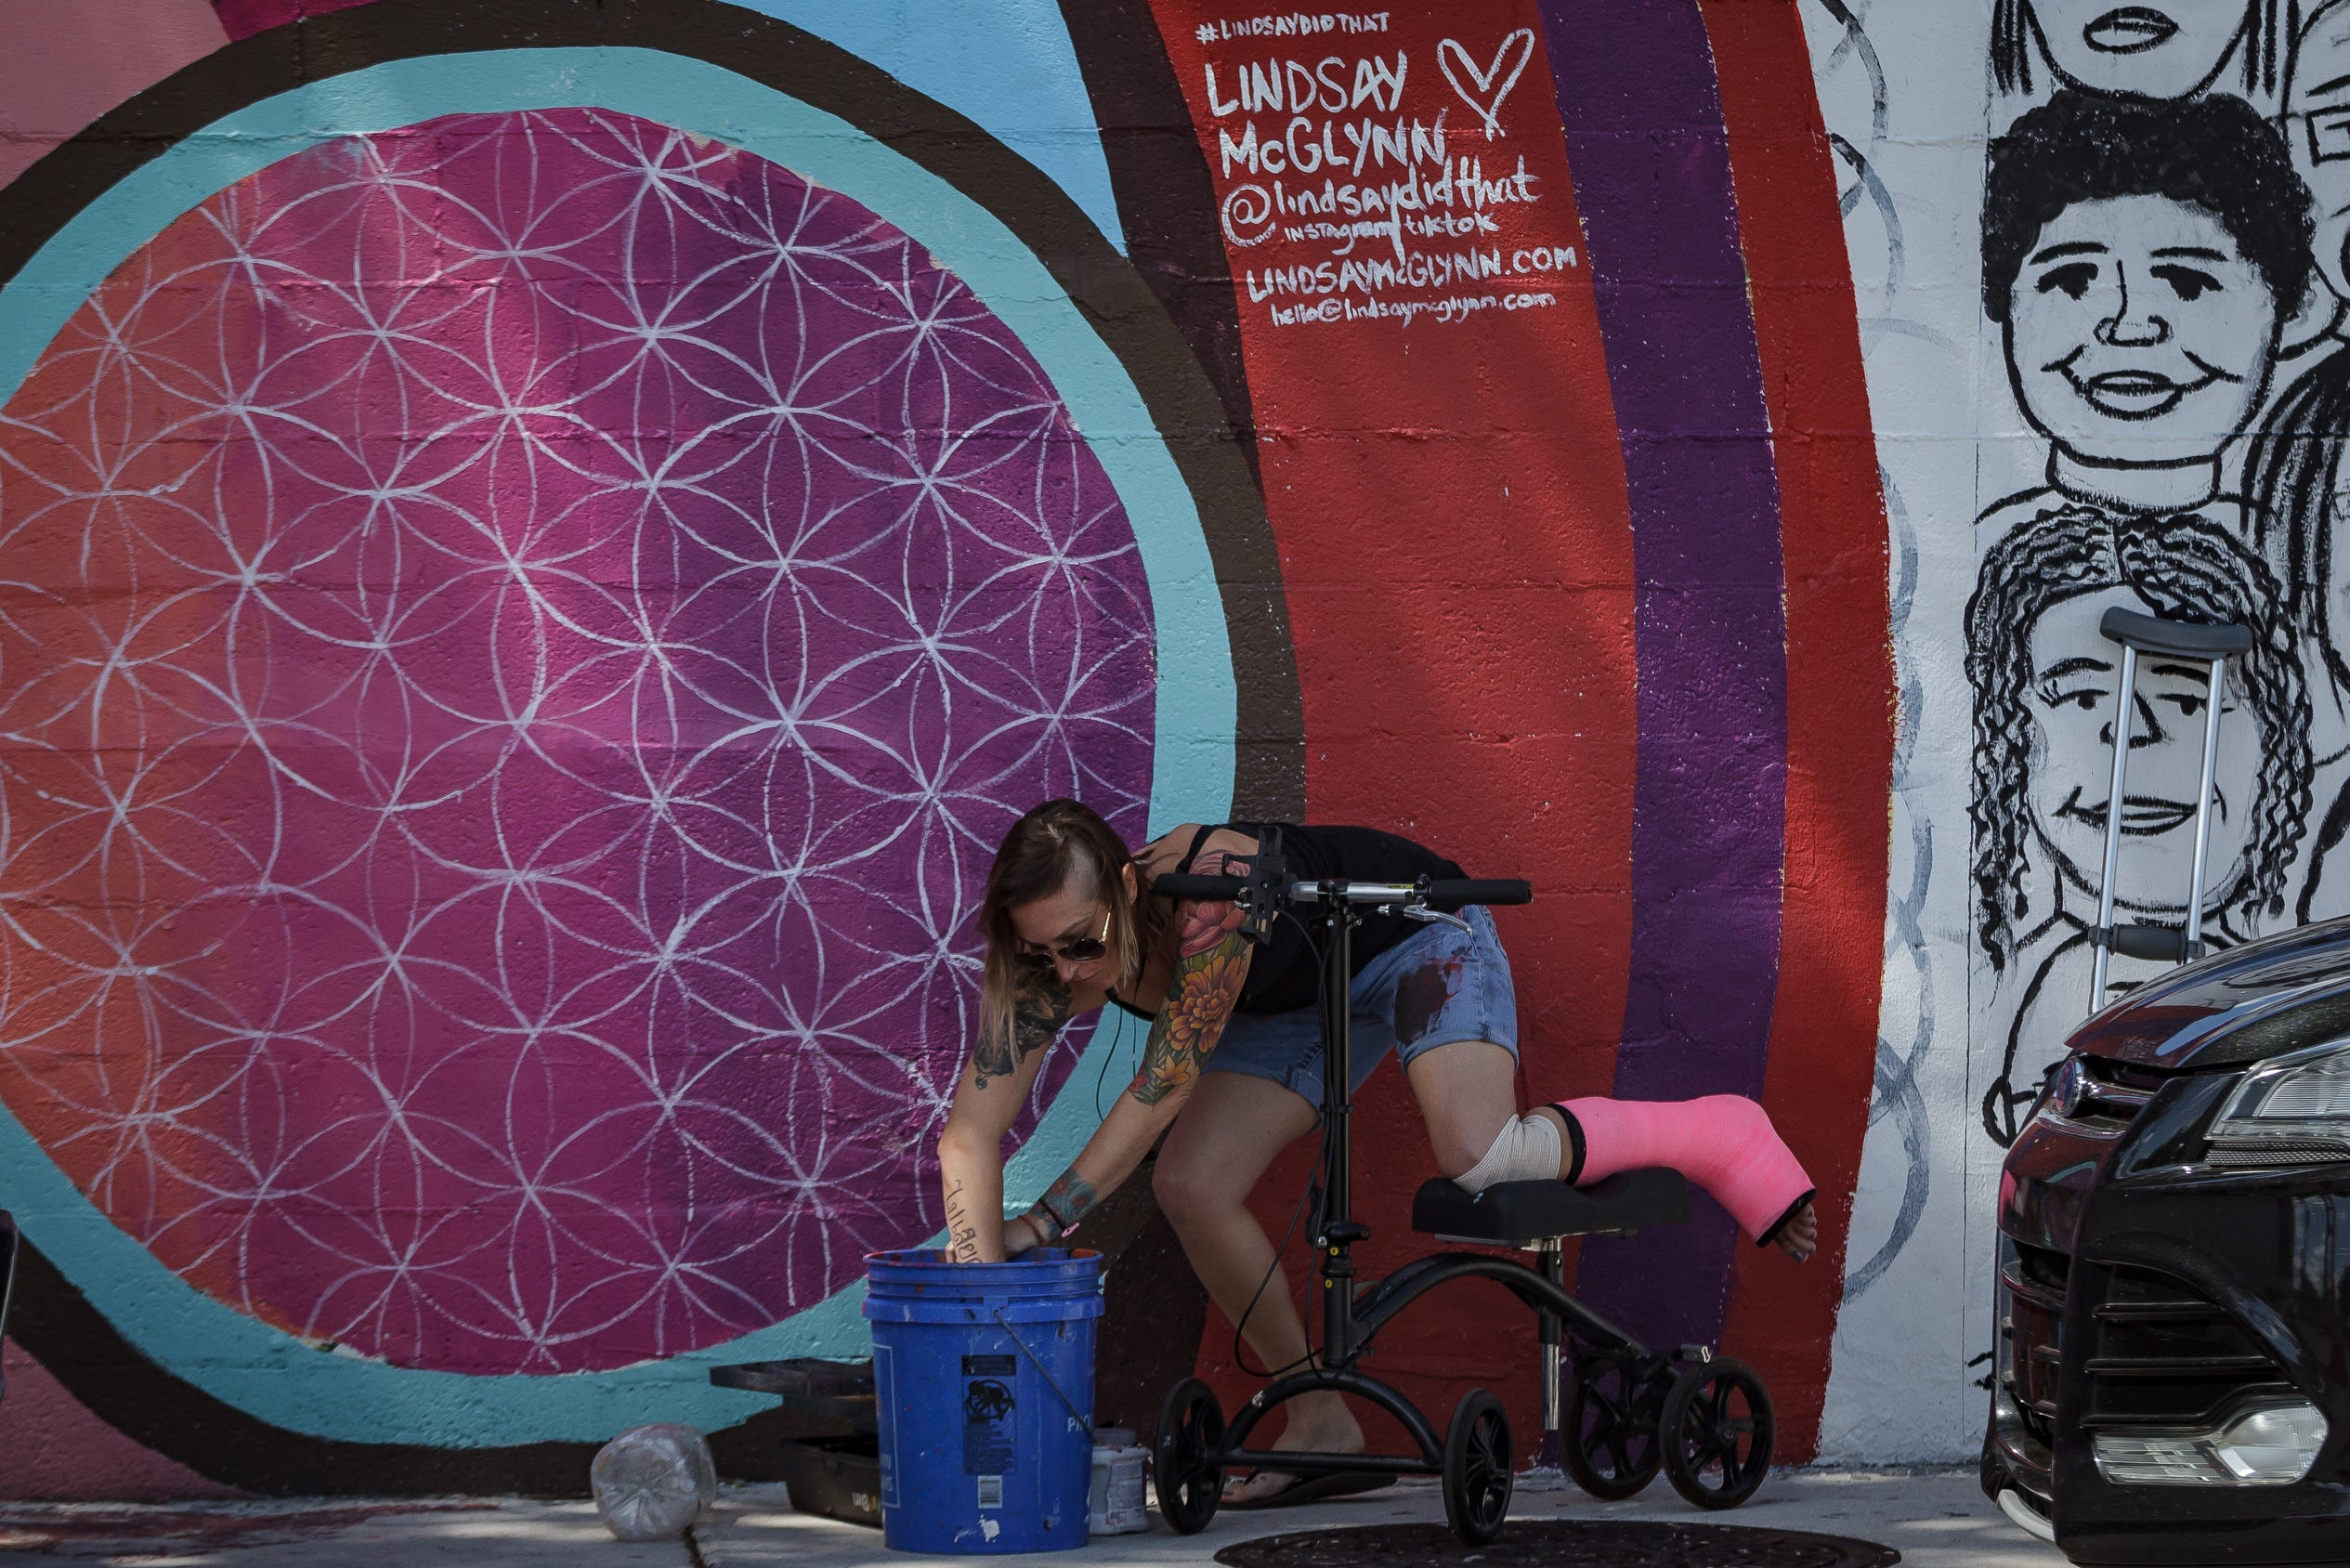 Artist Lindsay McGlynn Paints A Mural After Ankle Surgery